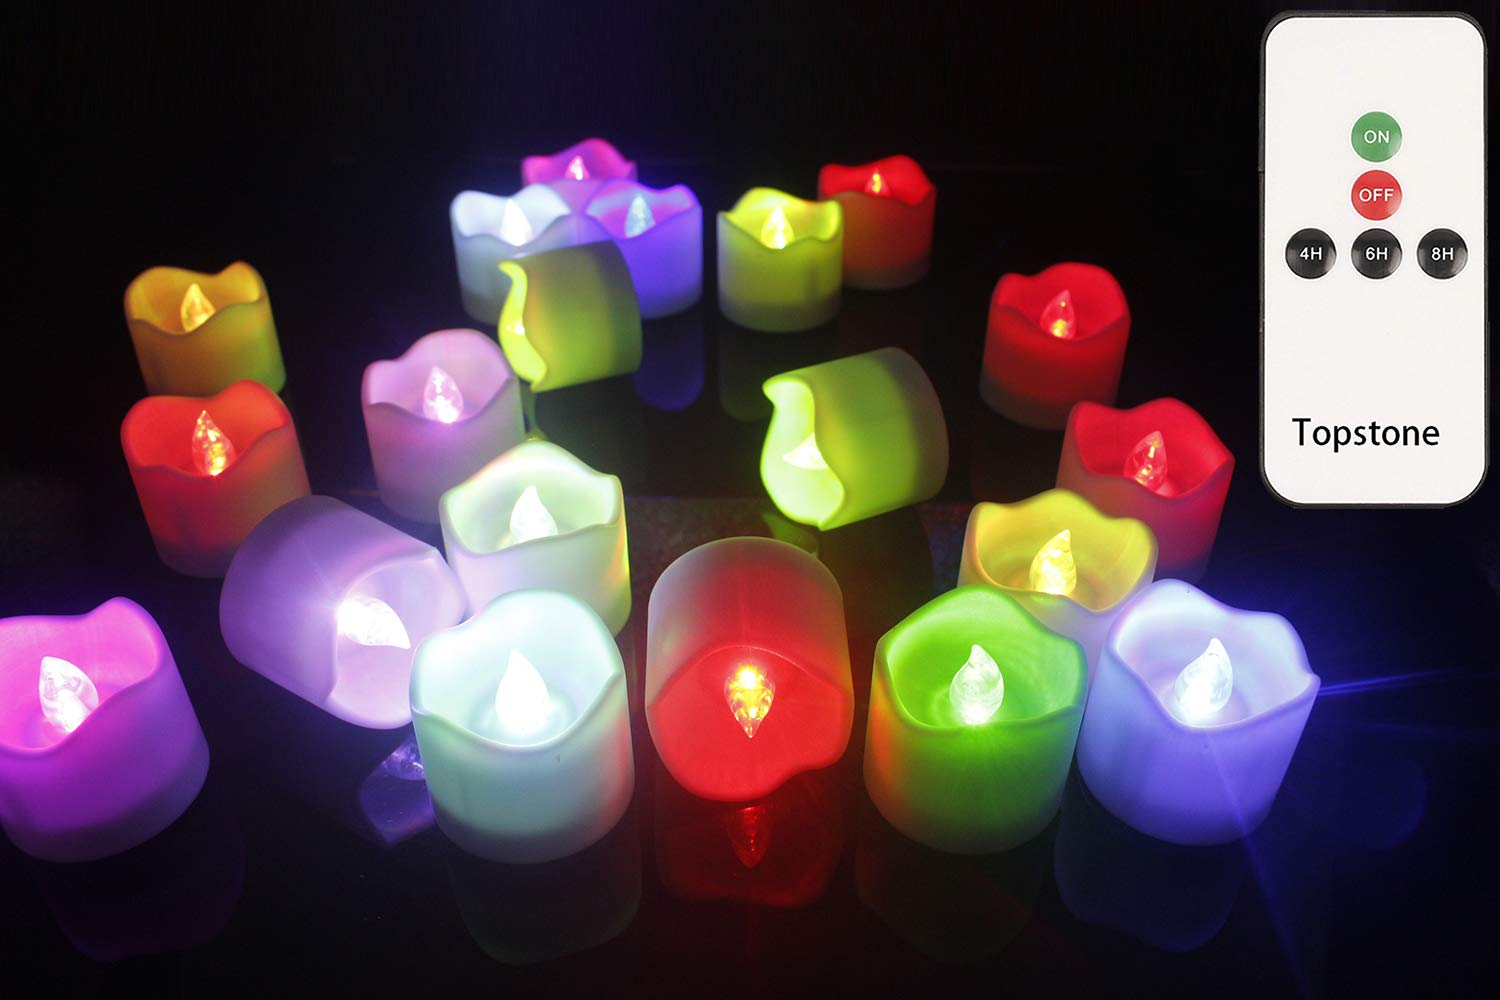 Topstone Remote Control Tea Lights,Battery Powered Votive Candles with Timer,Color Changing